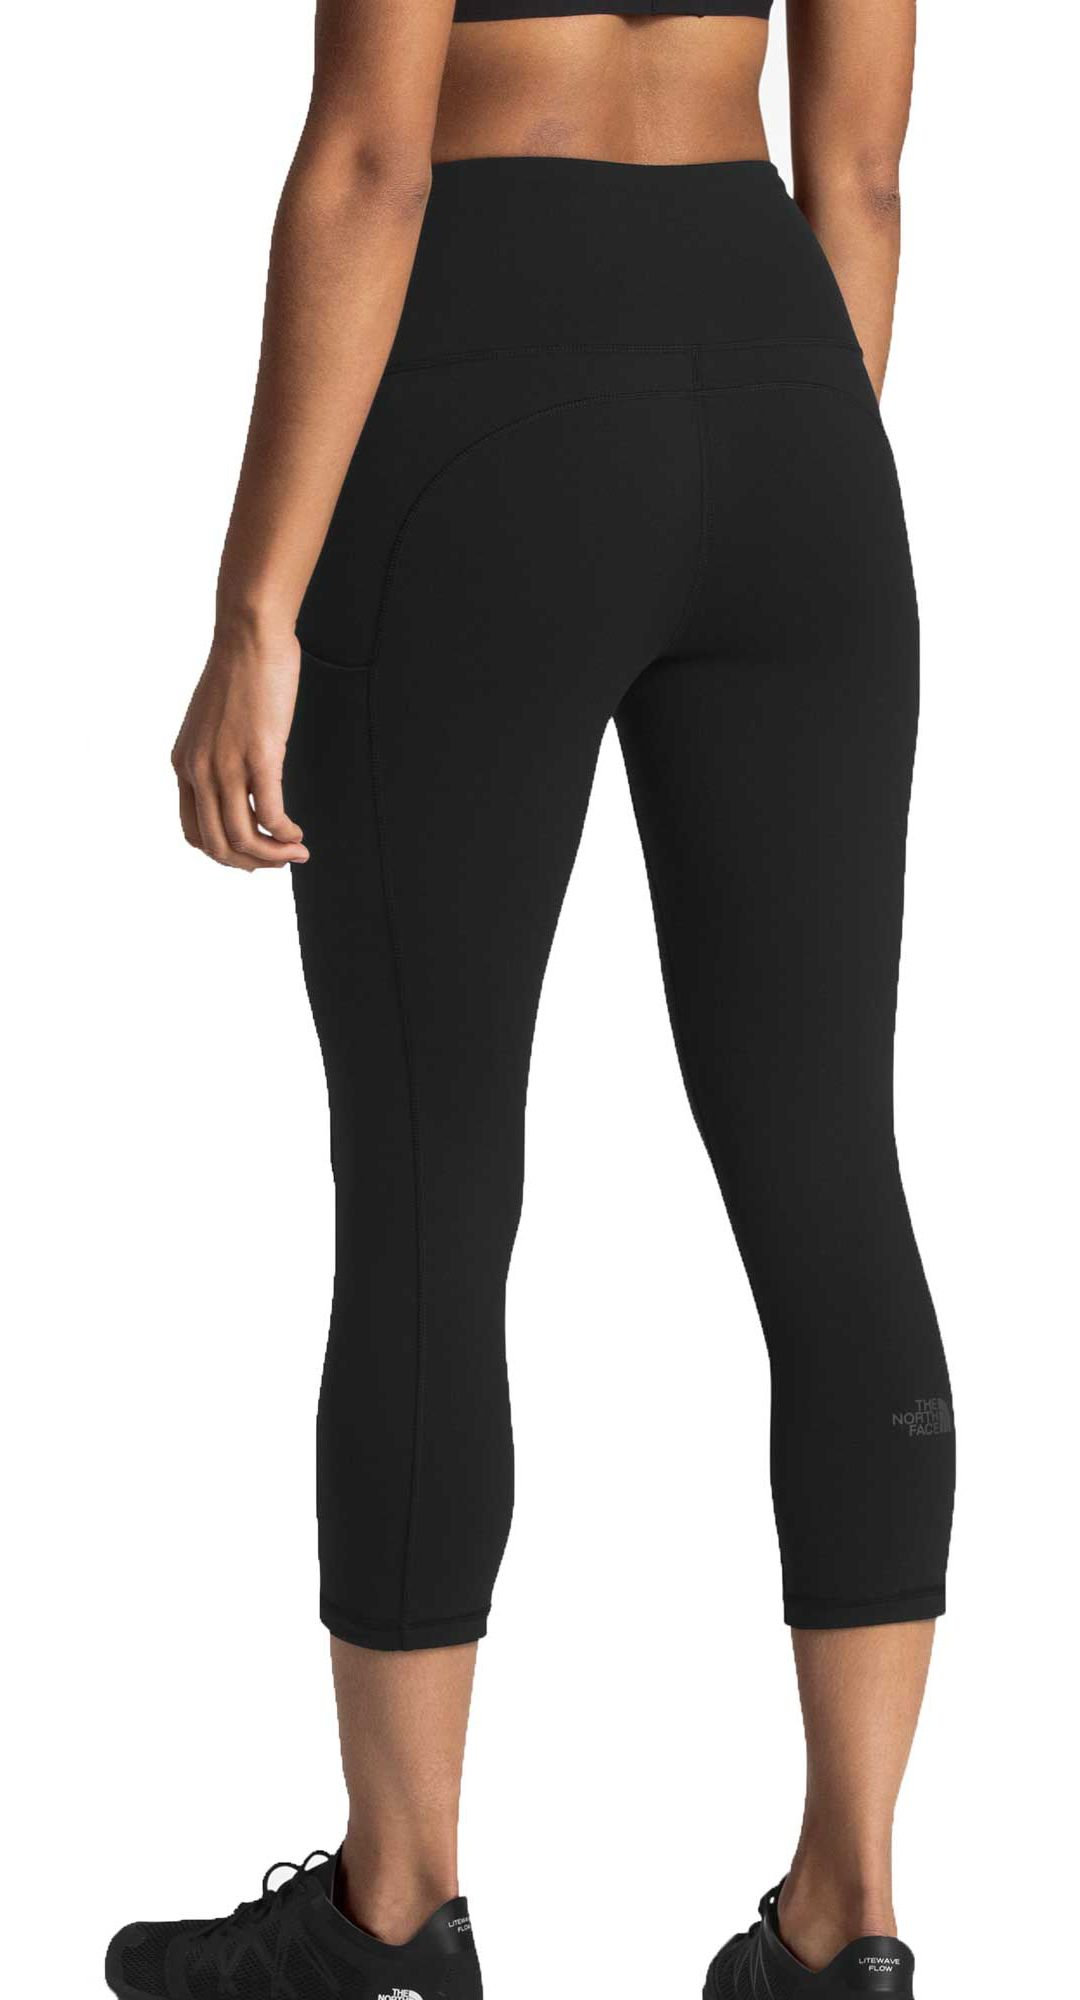 85726f6ccc3a9 The North Face Women's Motivation High-Rise Pocket Cropped Tight ...